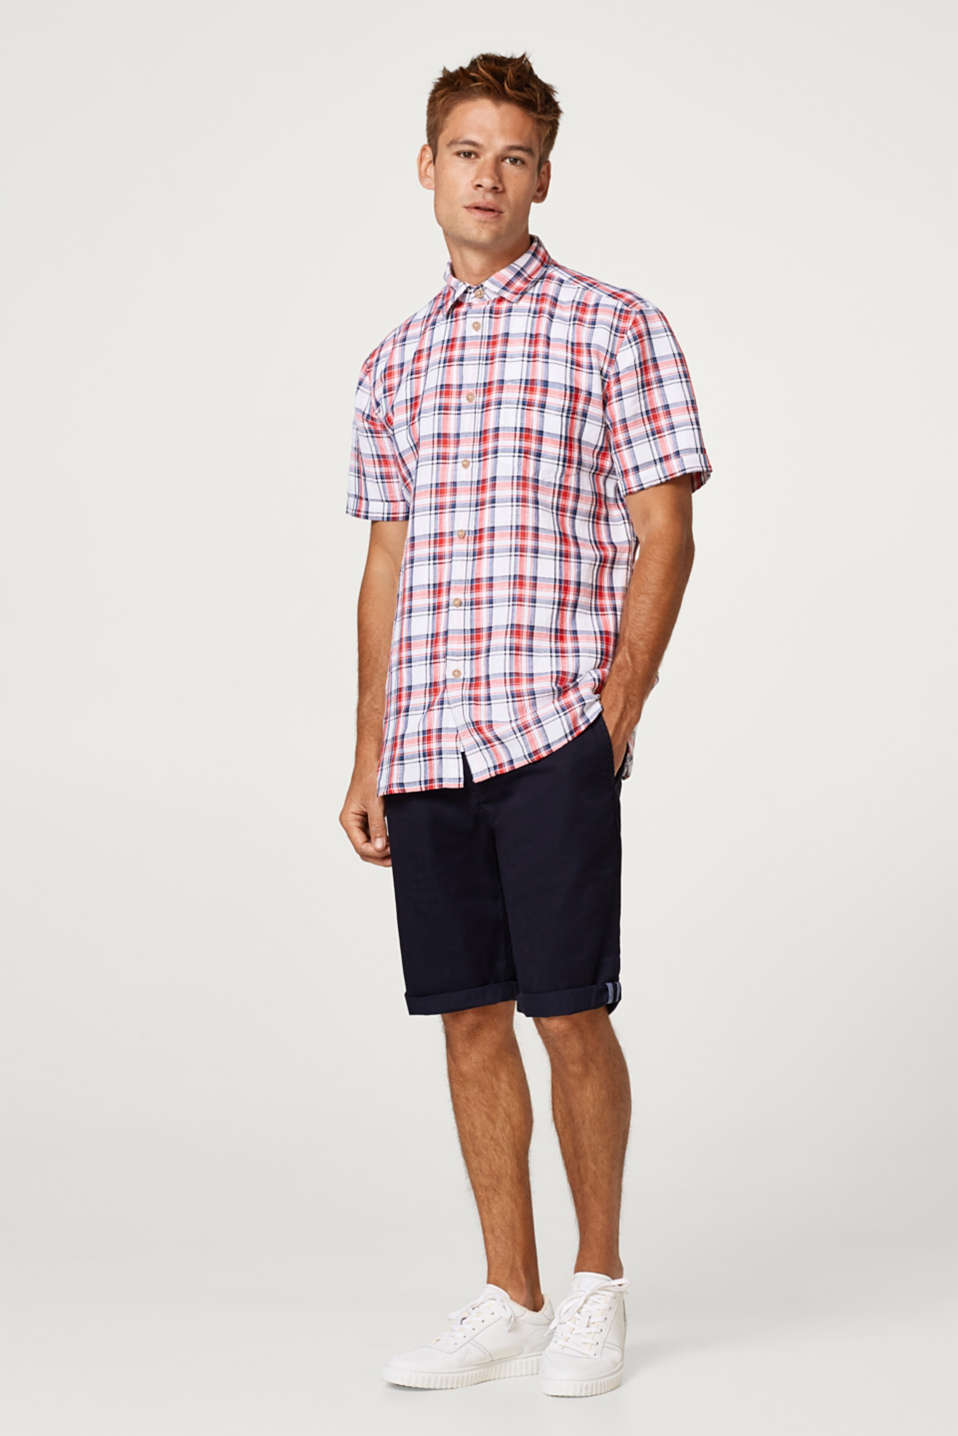 Made of blended linen: short sleeve shirt with a check pattern